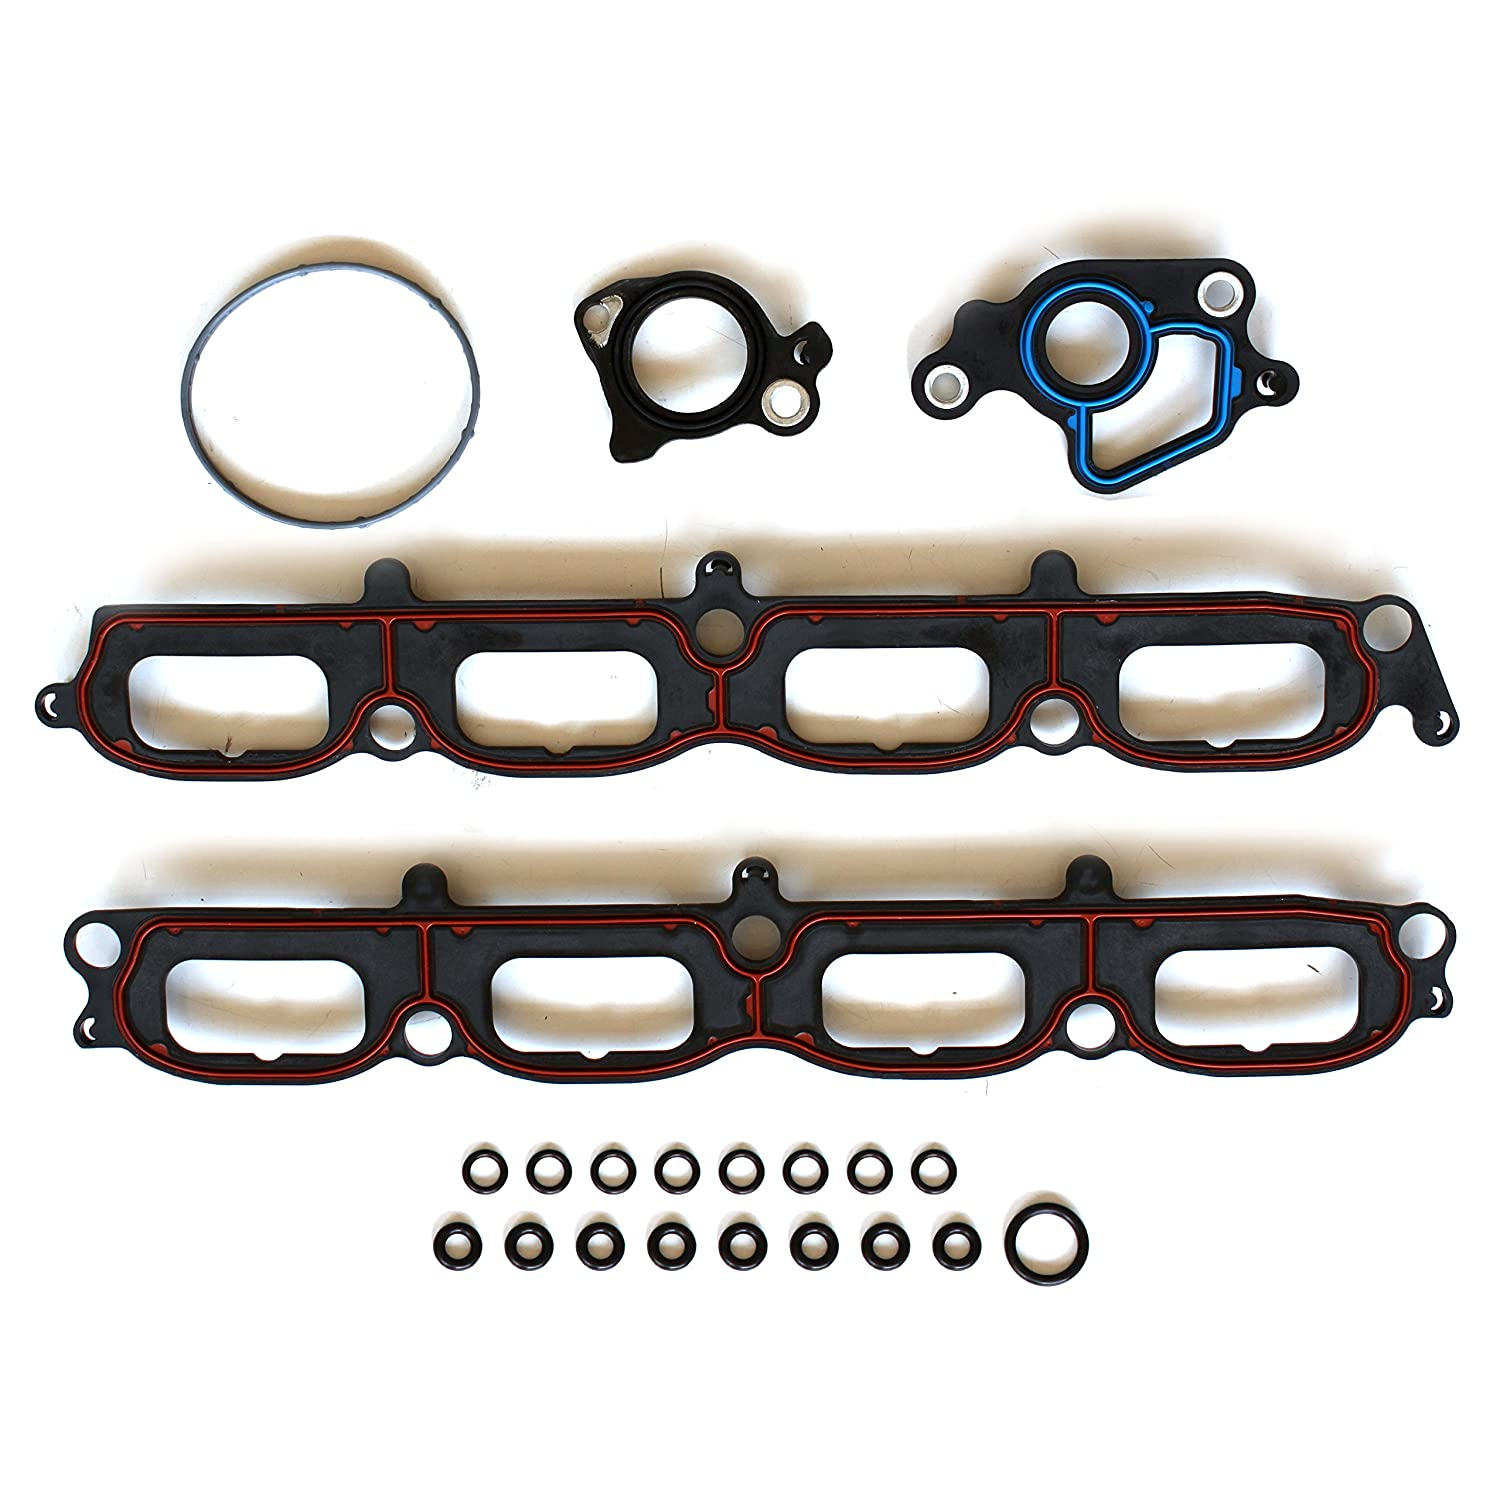 SCITOO Compatible with Intake Manifold Gasket Kit fit 2005-2012 SOHC Lincoln Navigator Ford Expedition F-150 ?5.4L V8 Engine Intake Manifold Gaskets Automotive Replacement Gasket Sets